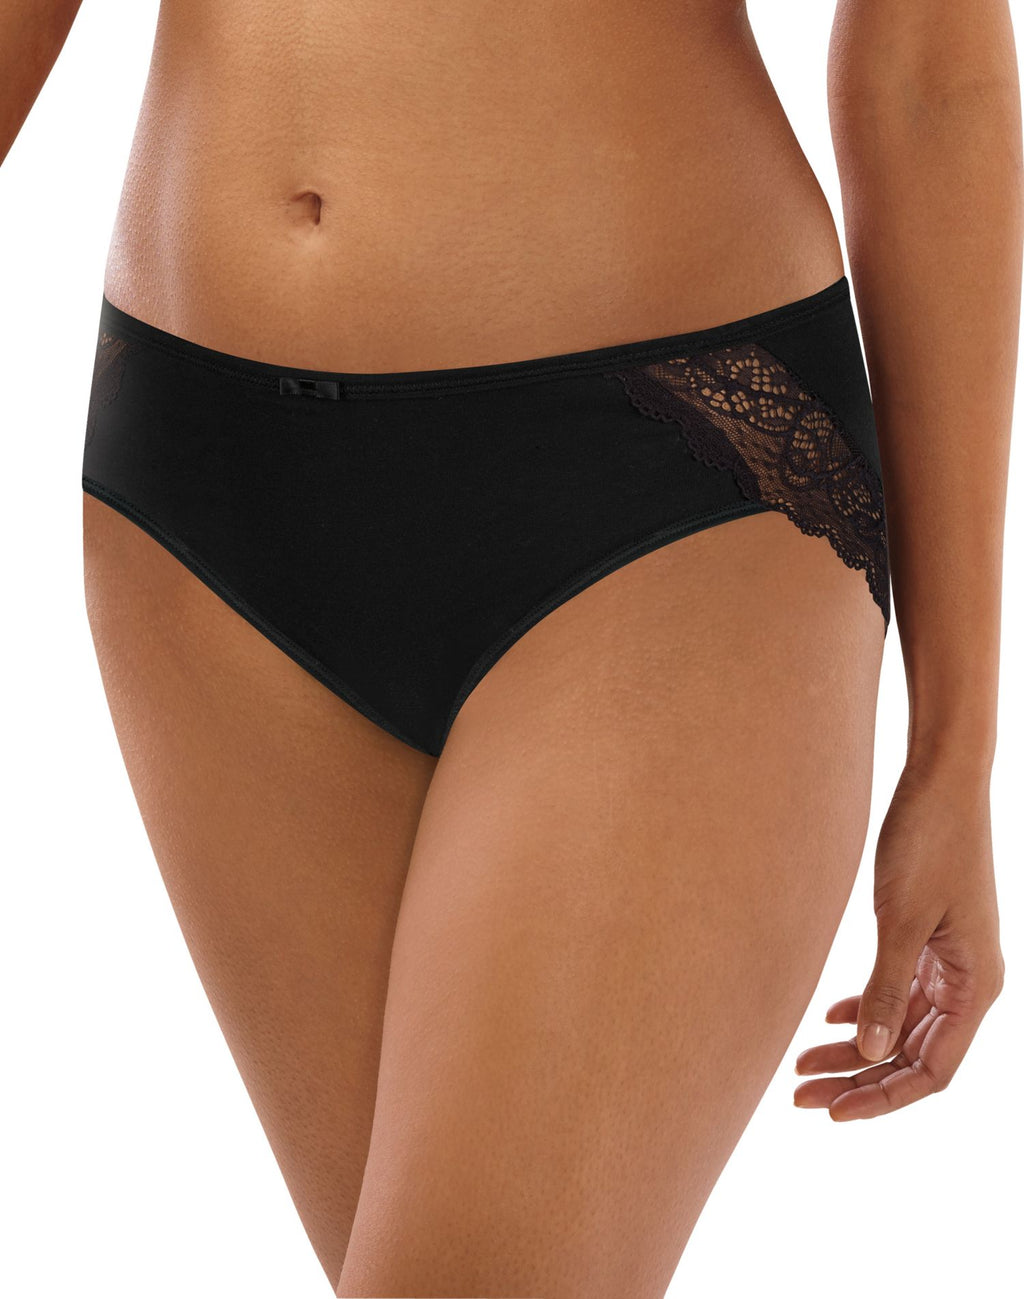 Bali Womens Lace Desire Cotton Hipster Panty